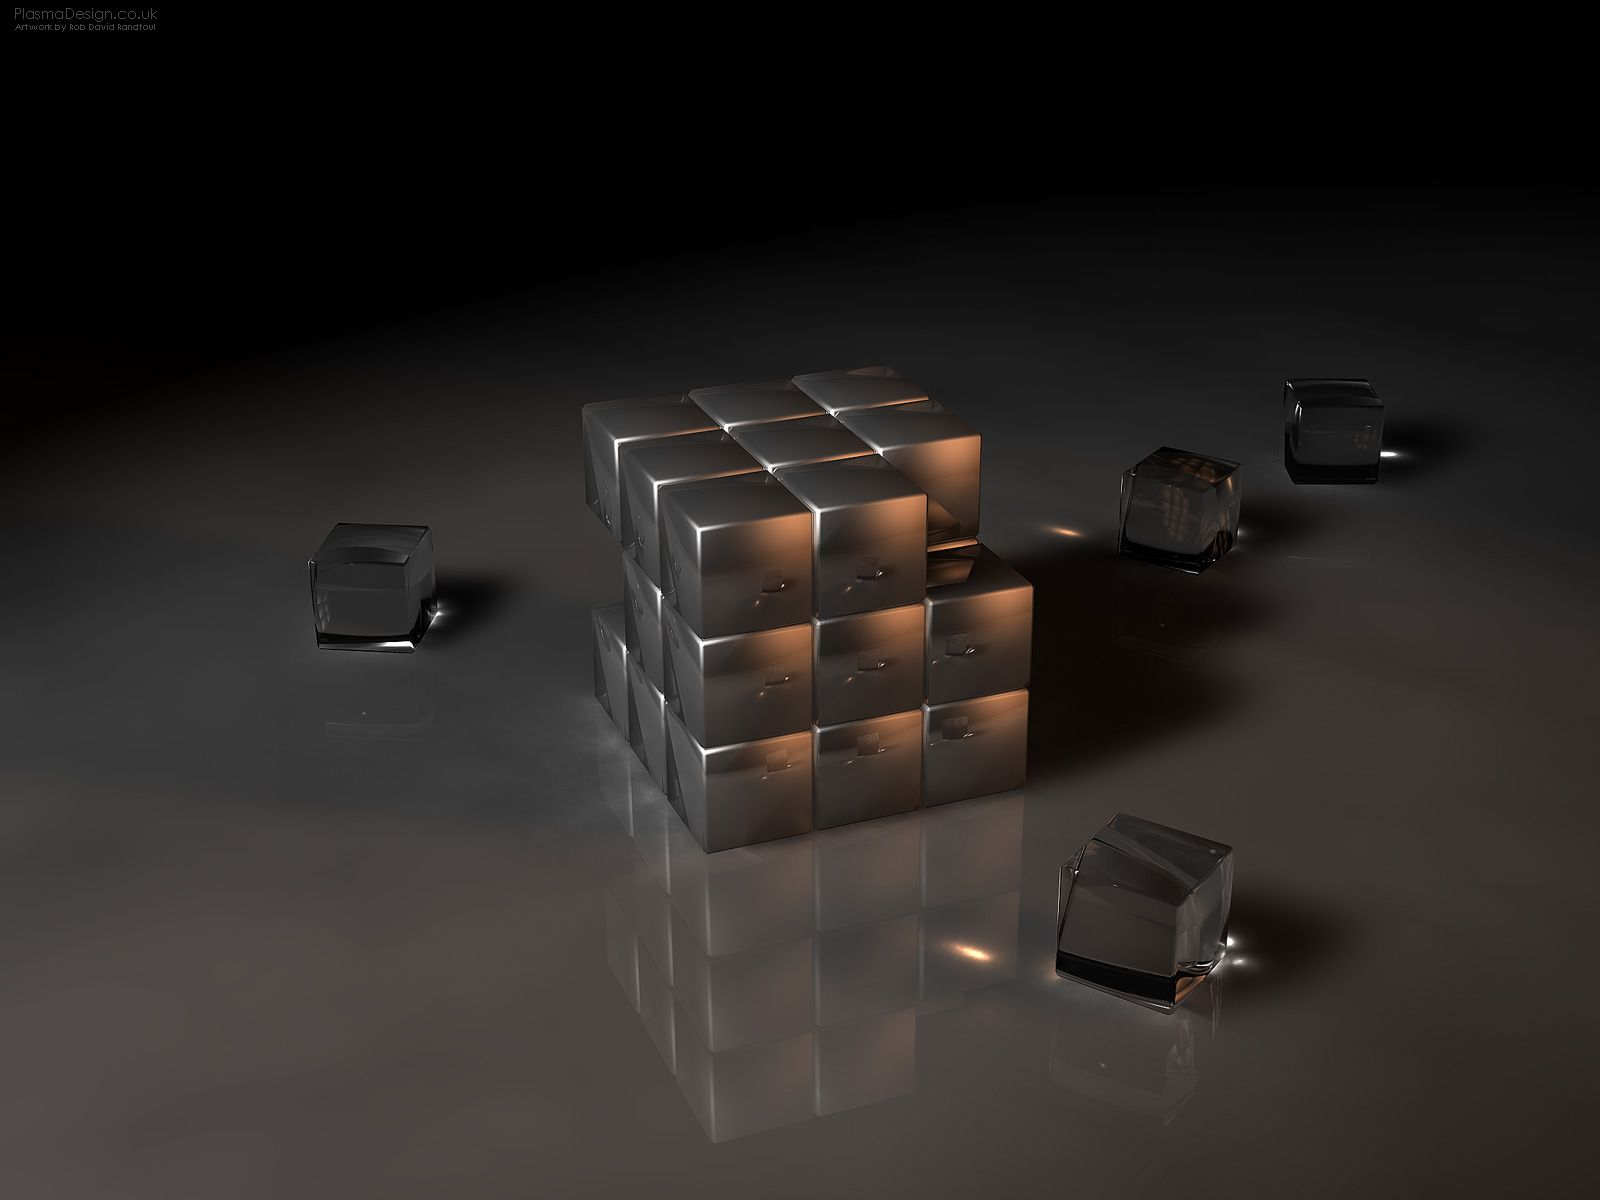 classy wallpaper in hd quality this cube has its metallic shine we have available a wide selection of high resolution and hd wallpapers in diverse sizes